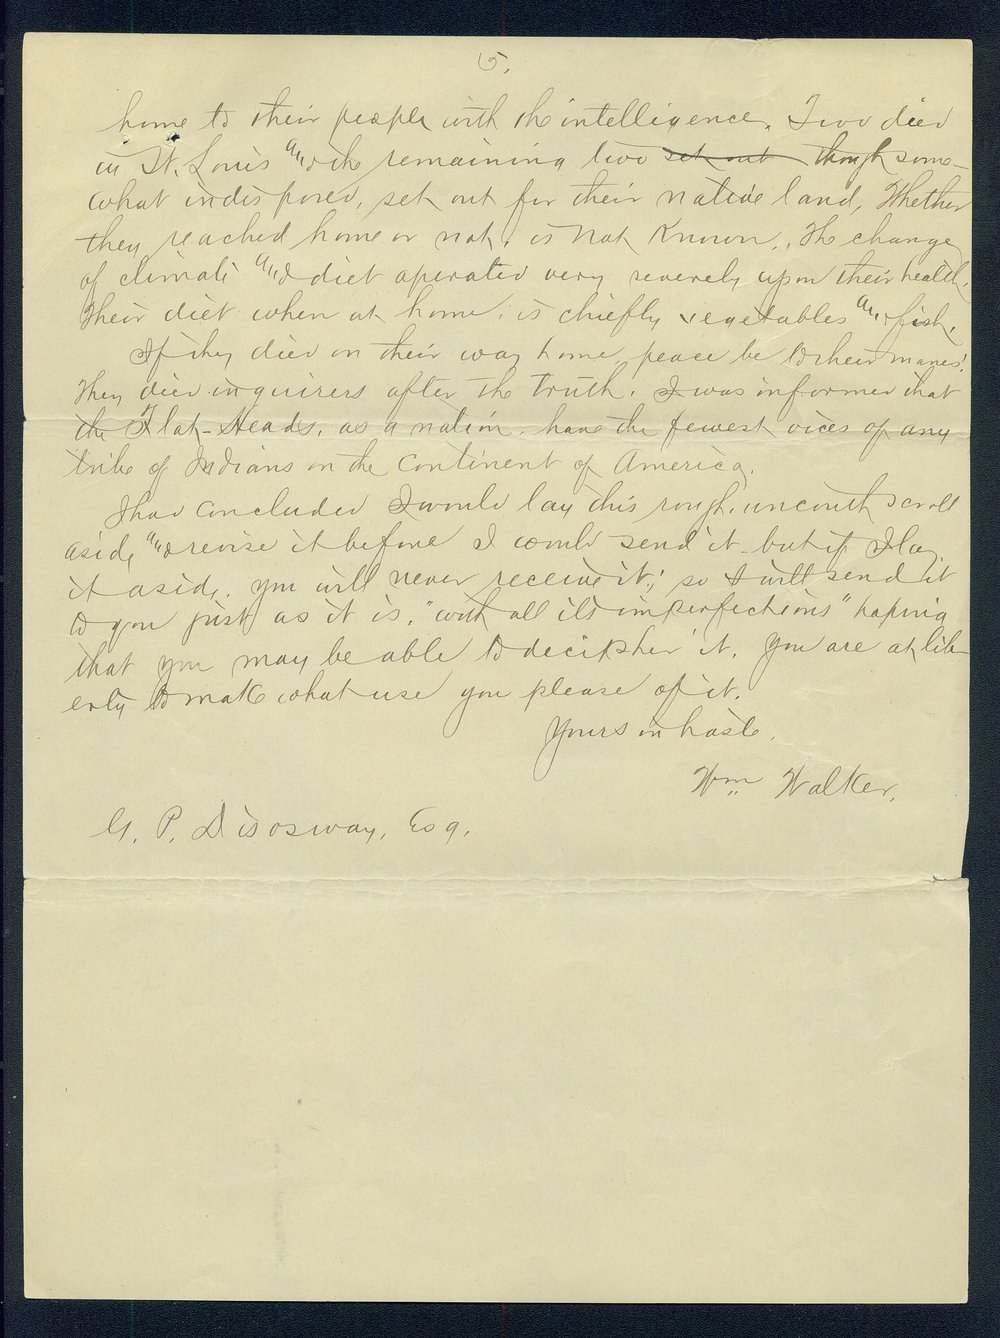 William Walker to G.P. Disosway - 5